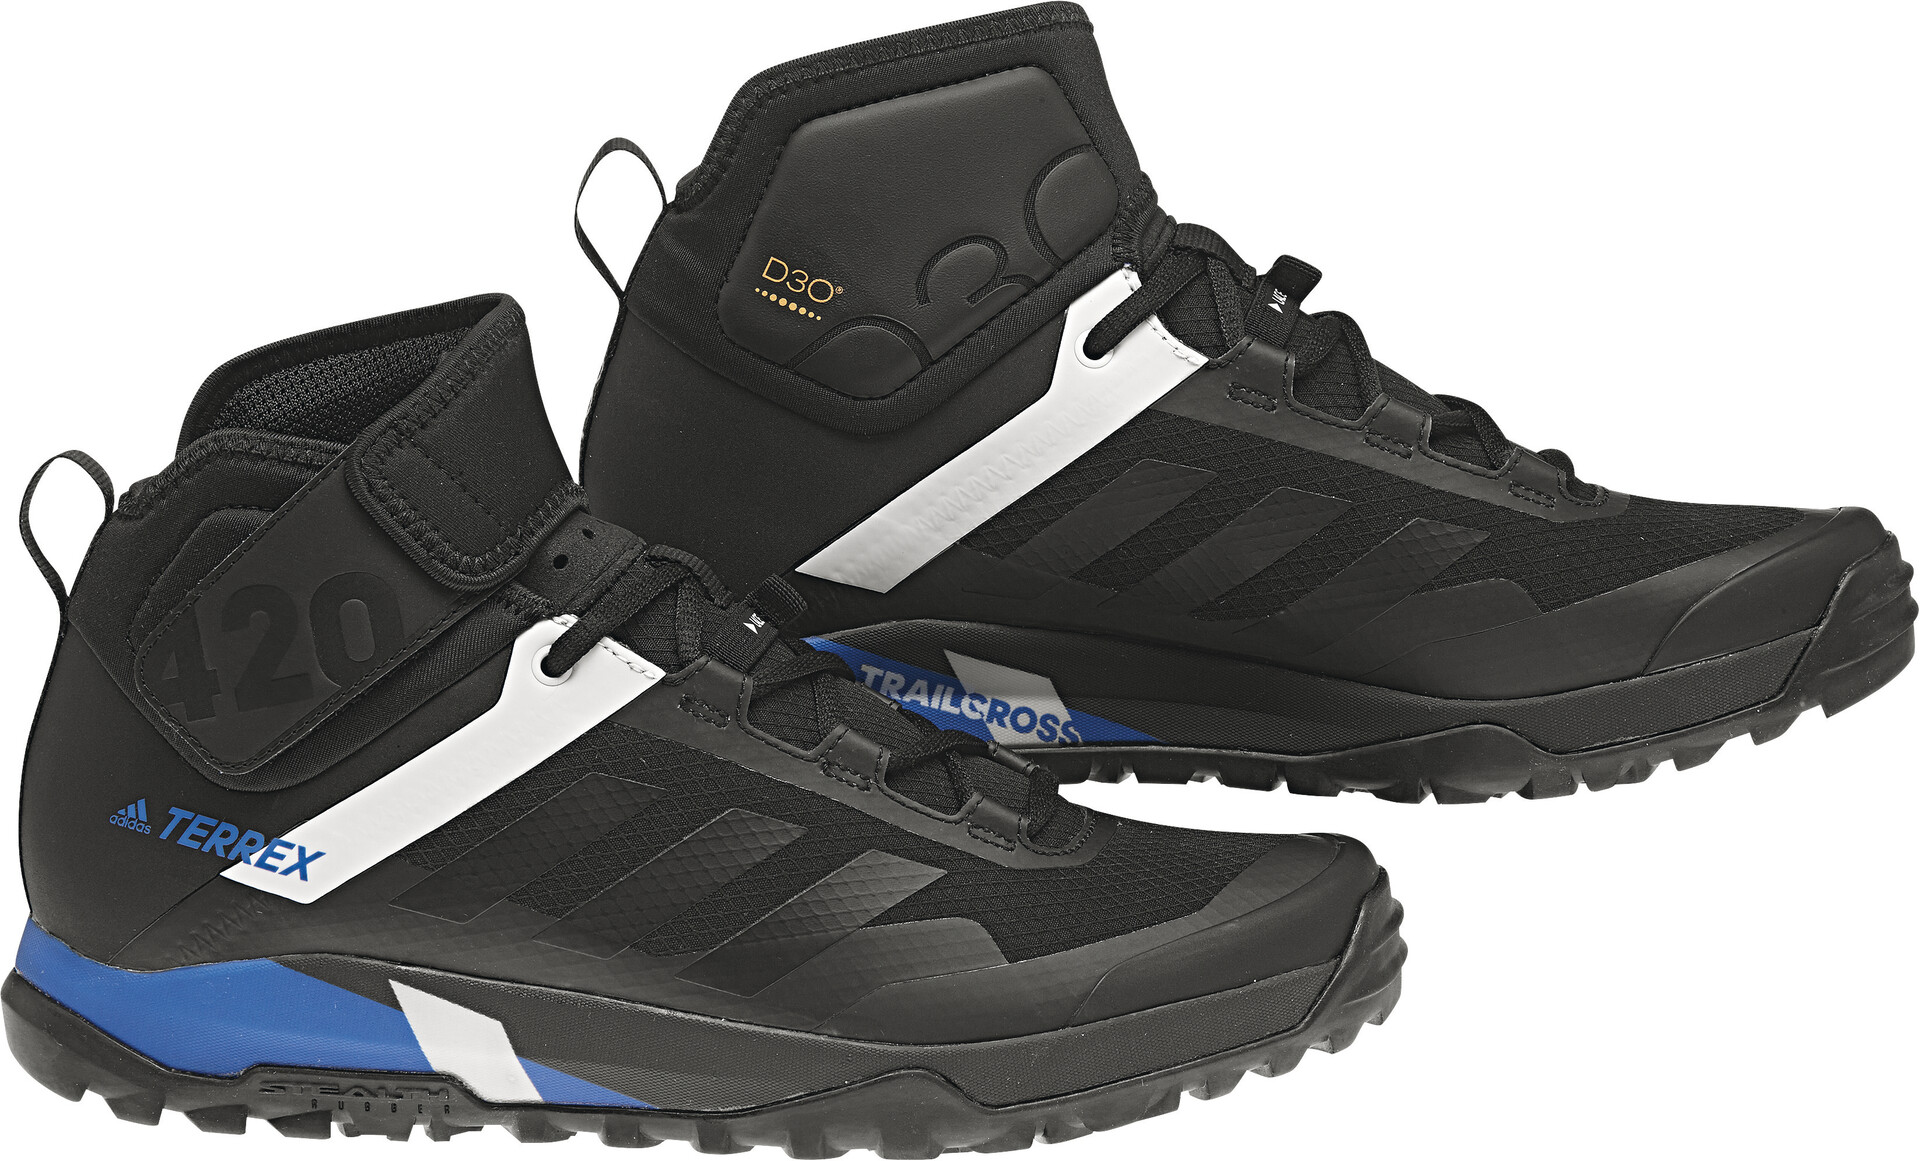 adidas Terrex Trail Cross Protect Shoes Blue | adidas Switzerland